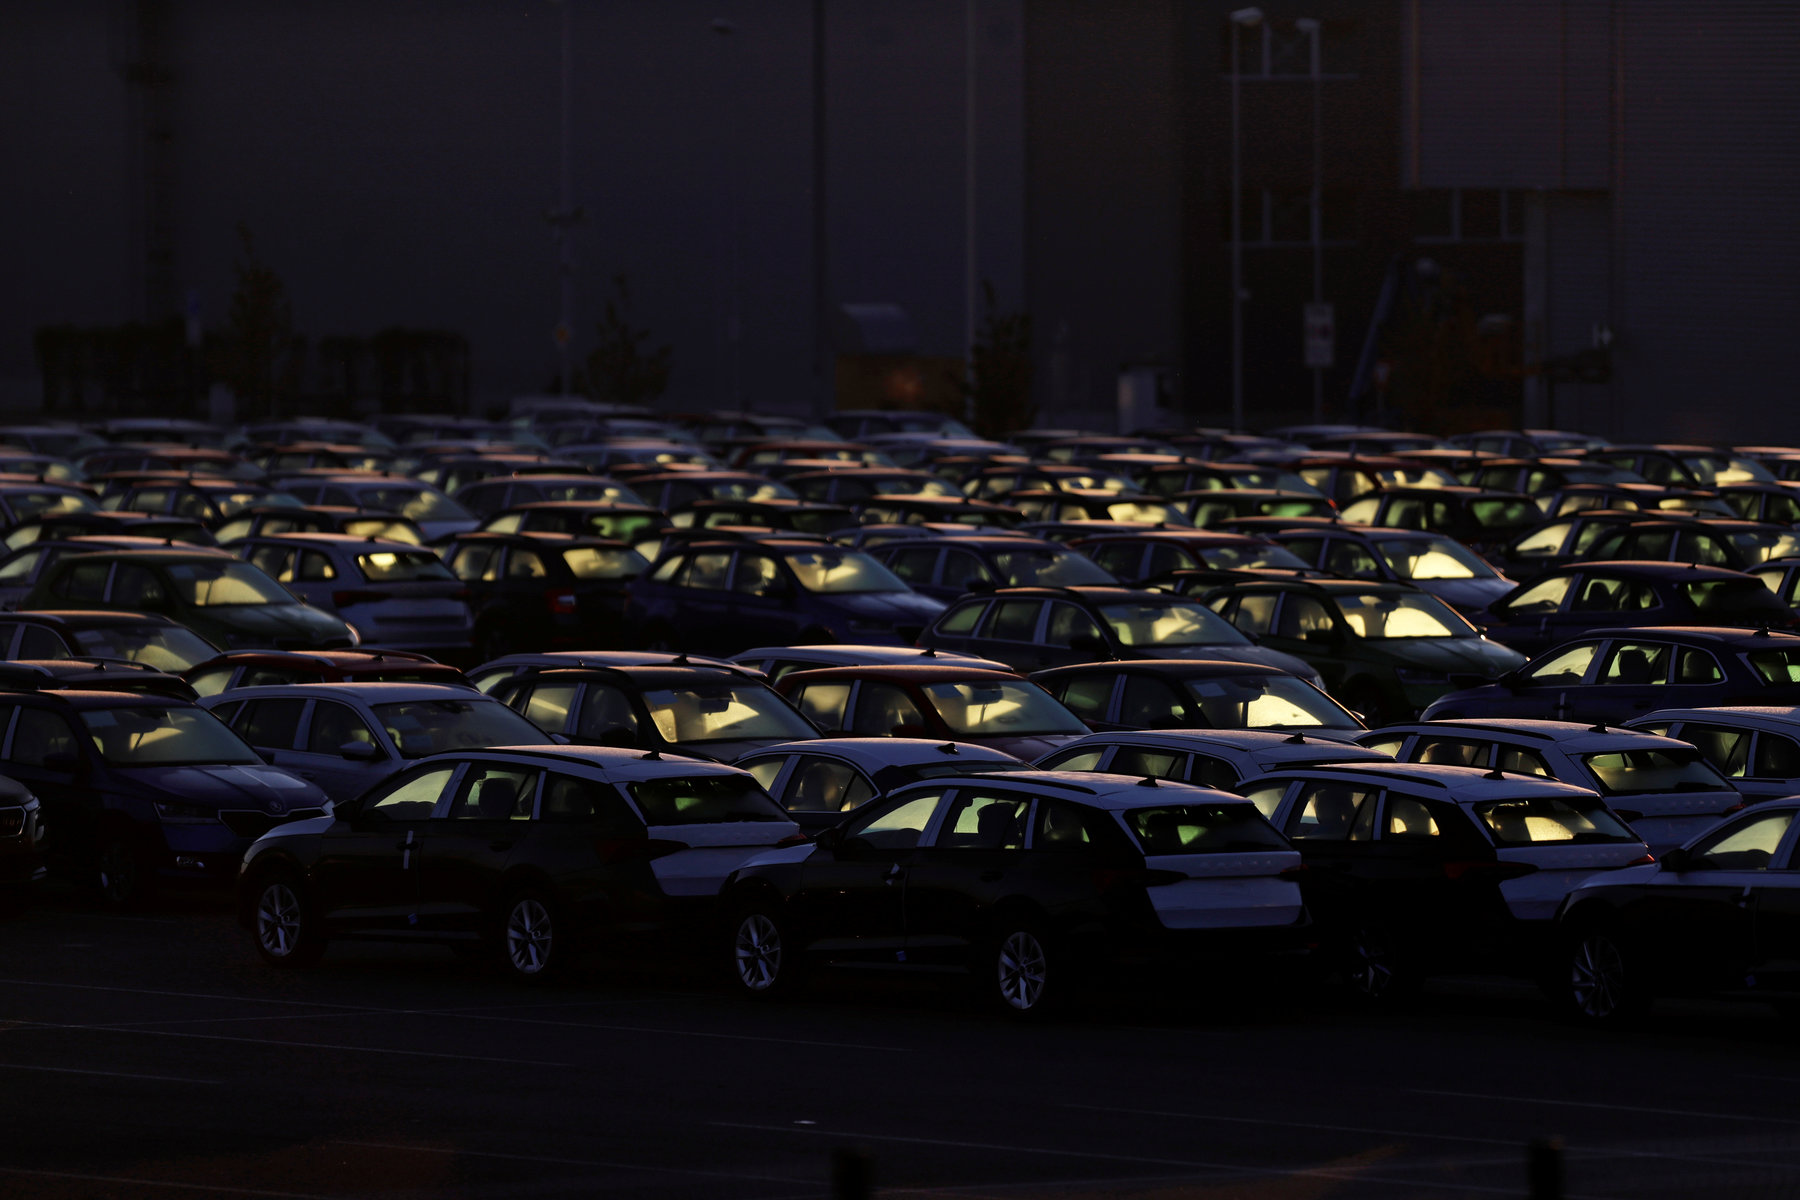 A pandemic will permanently change the auto industry in a subtle way